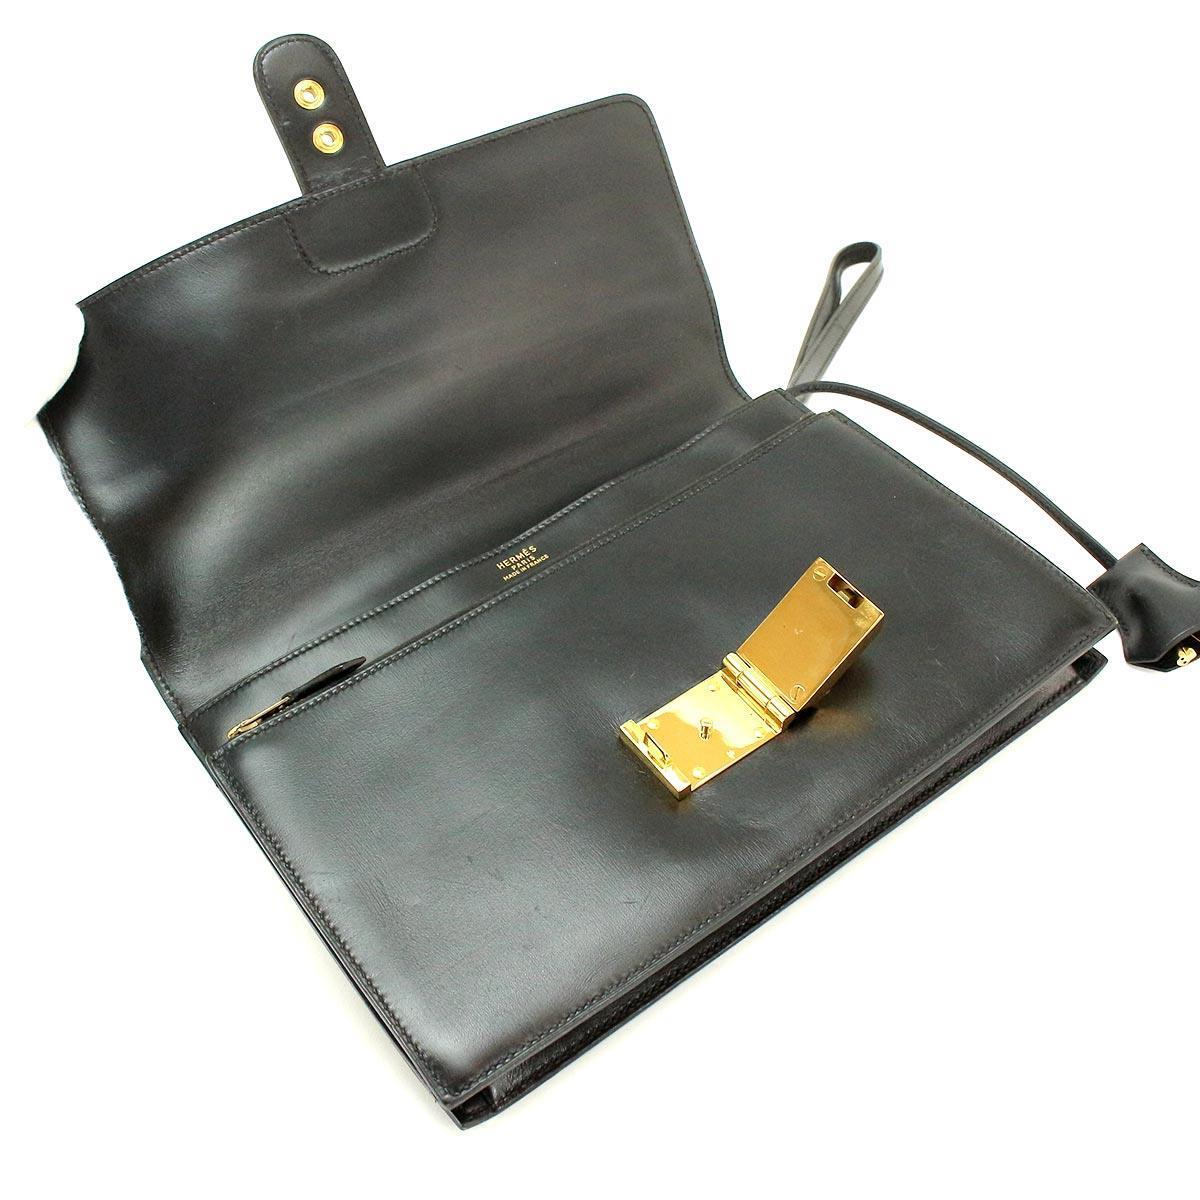 d5bd98521a84 Hermes HERMES pochette jet clutch bag boxcalf leather black gold metal  fittings